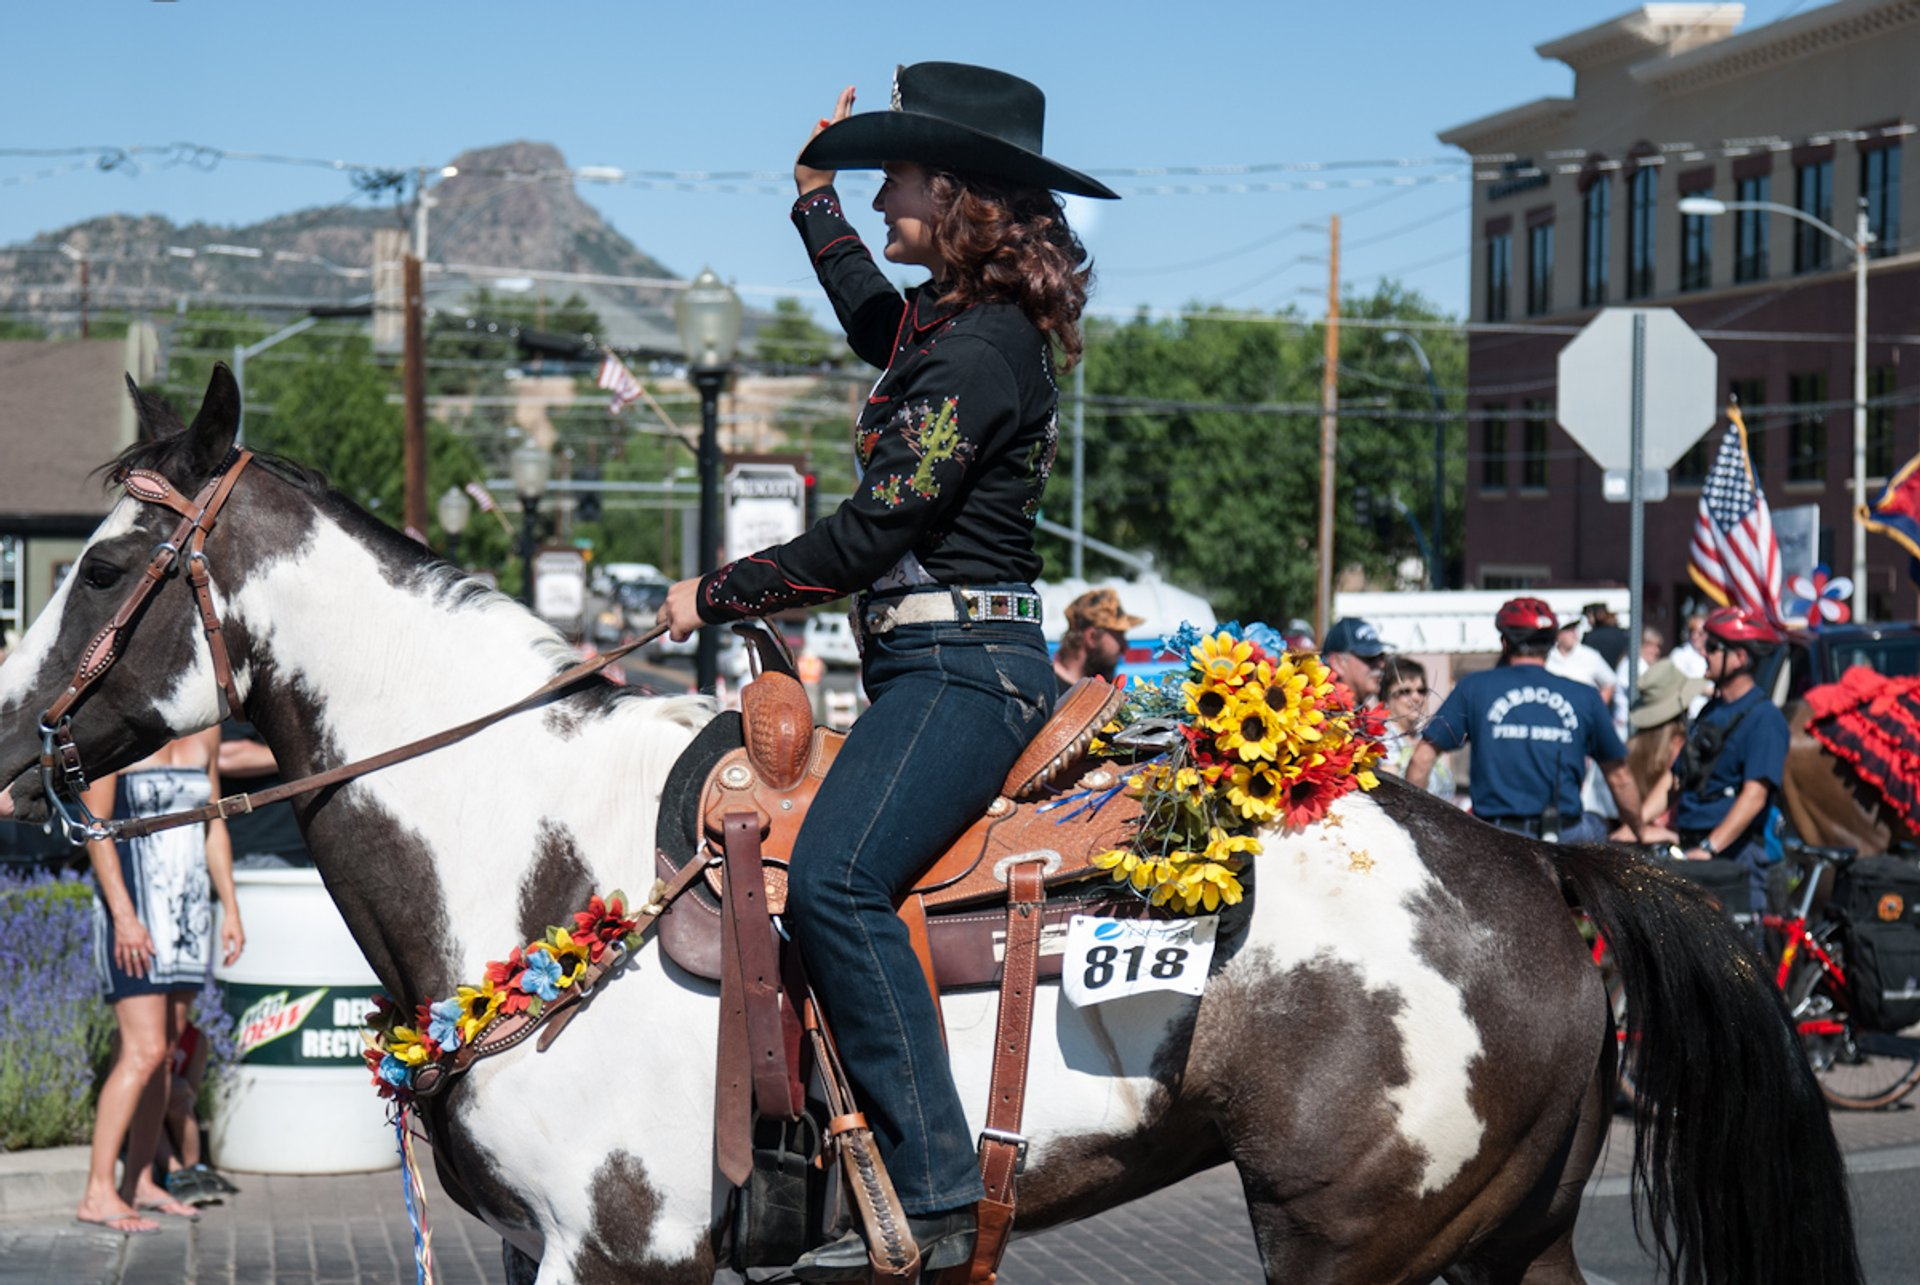 Rodeo Queen at Prescott 4th of July parade 2020